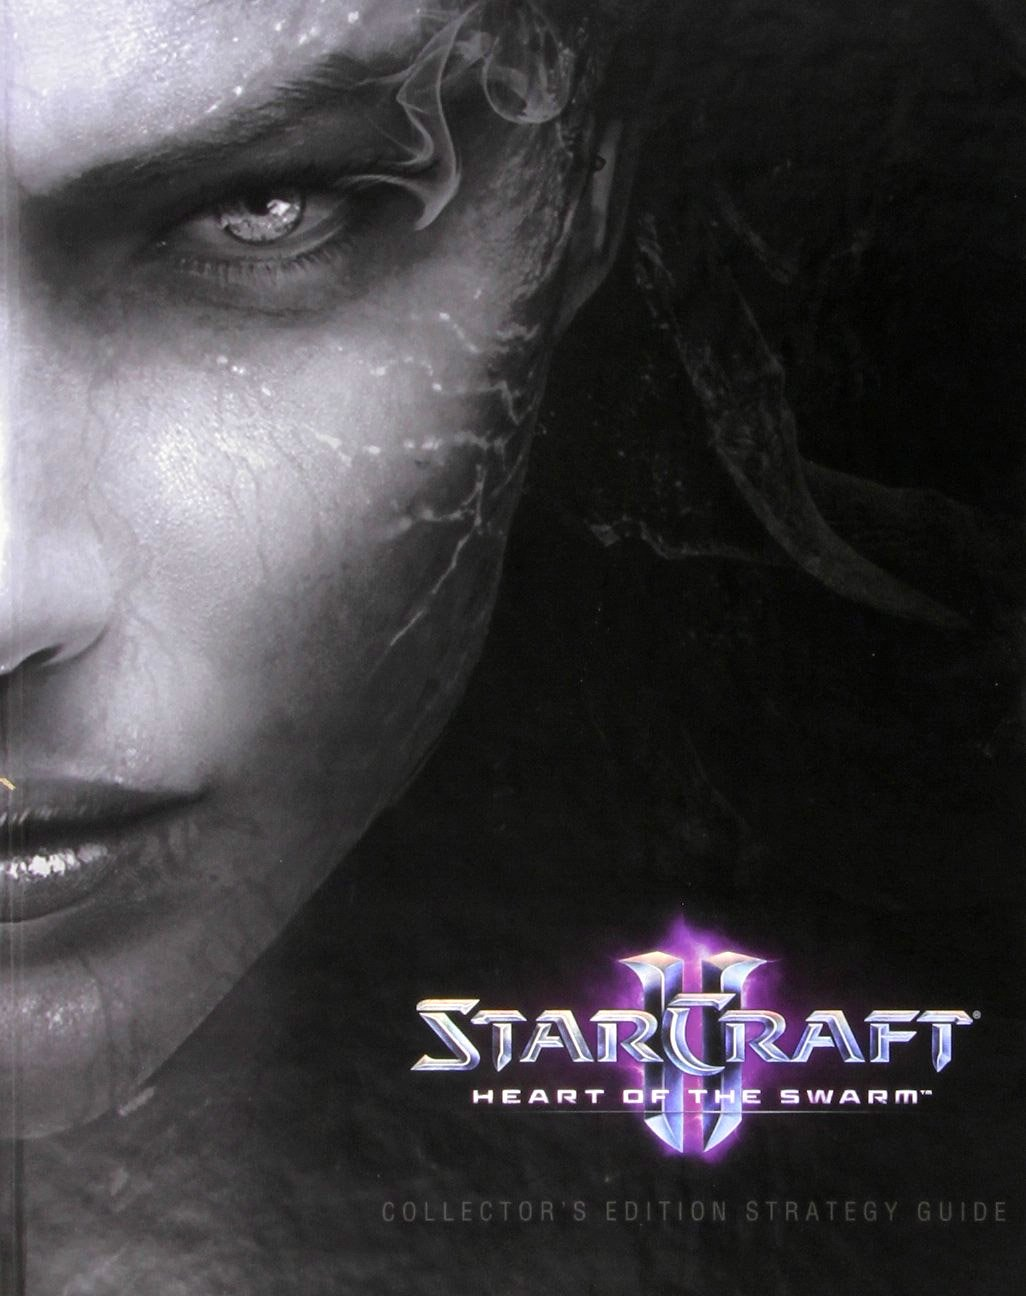 Starcraft II: Heart of the Storm - Collector's Edition Strategy Guide